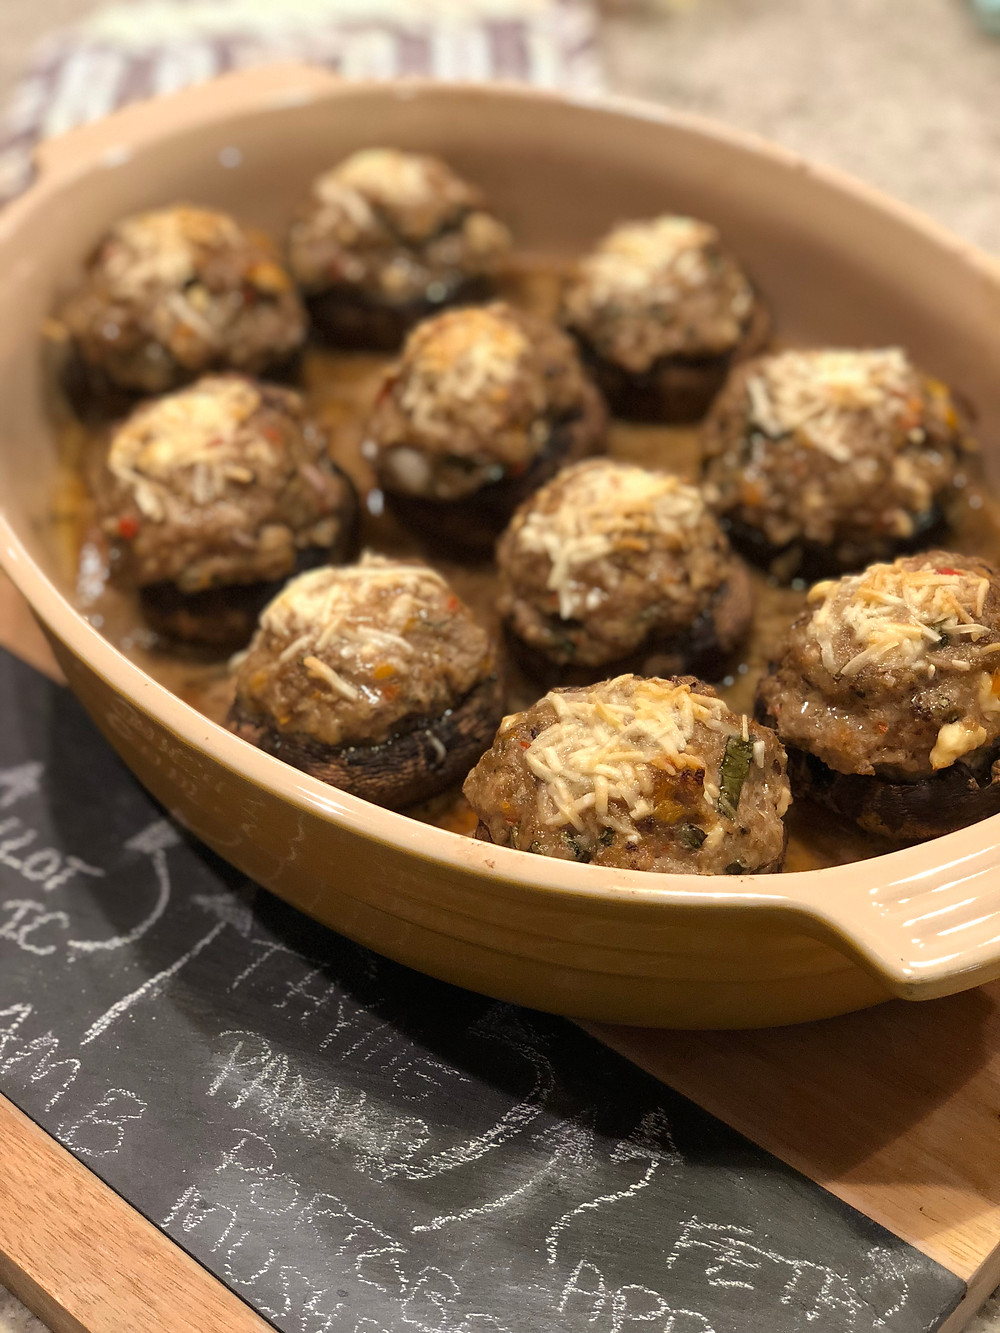 Lamb stuffed mushrooms in yellow le cruset on cutting board with black board and chalk ingredients